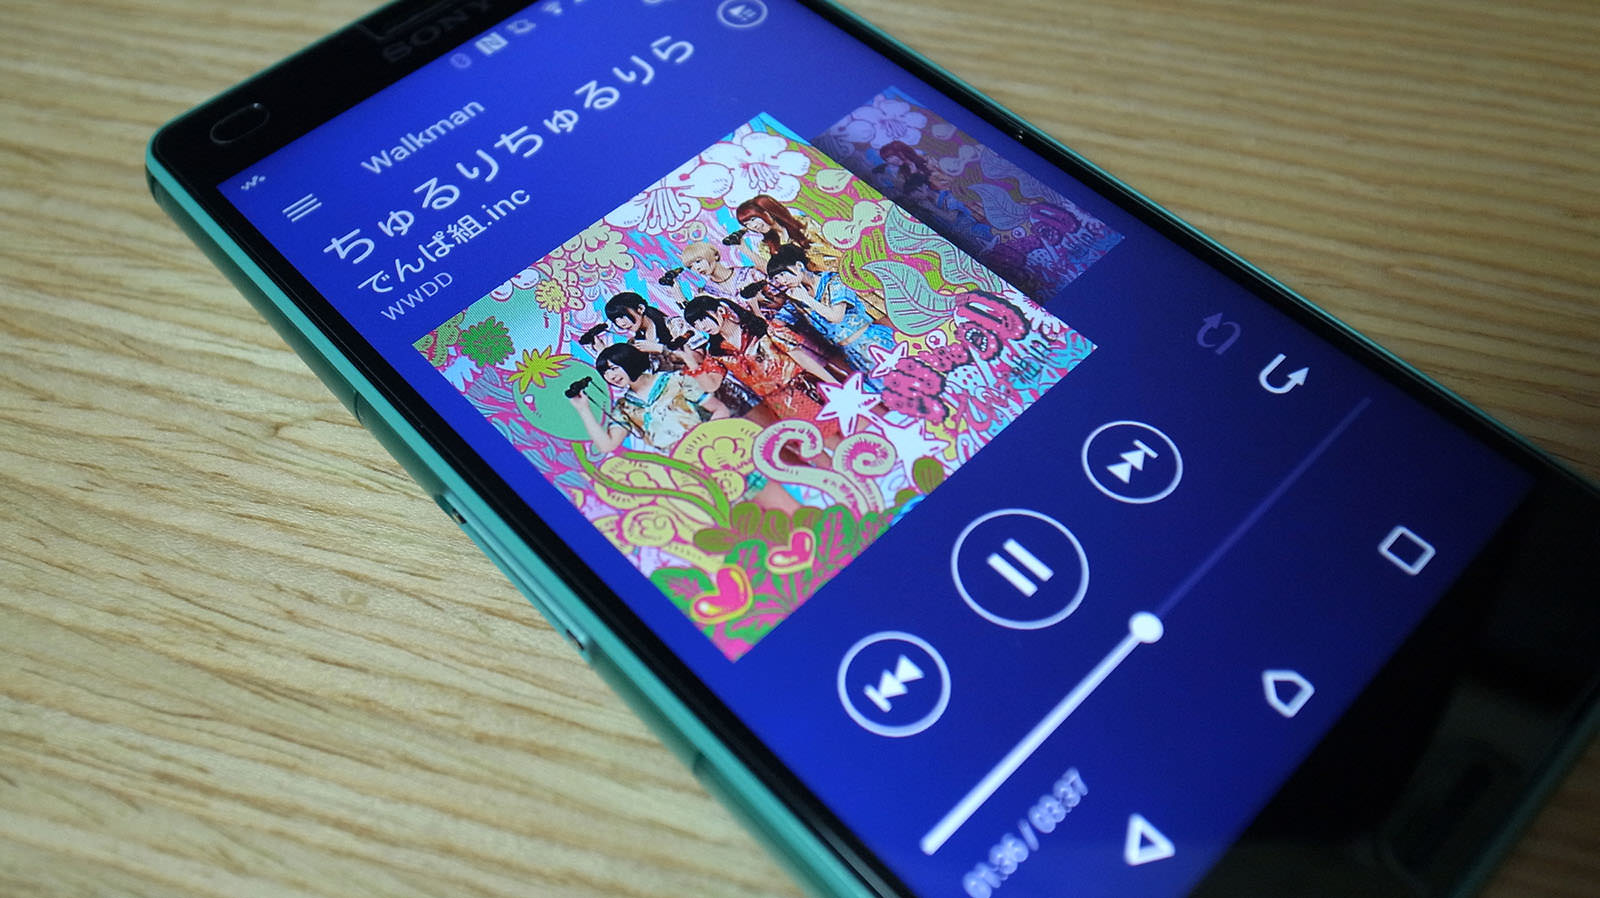 Xperia Walkman nowplaying share